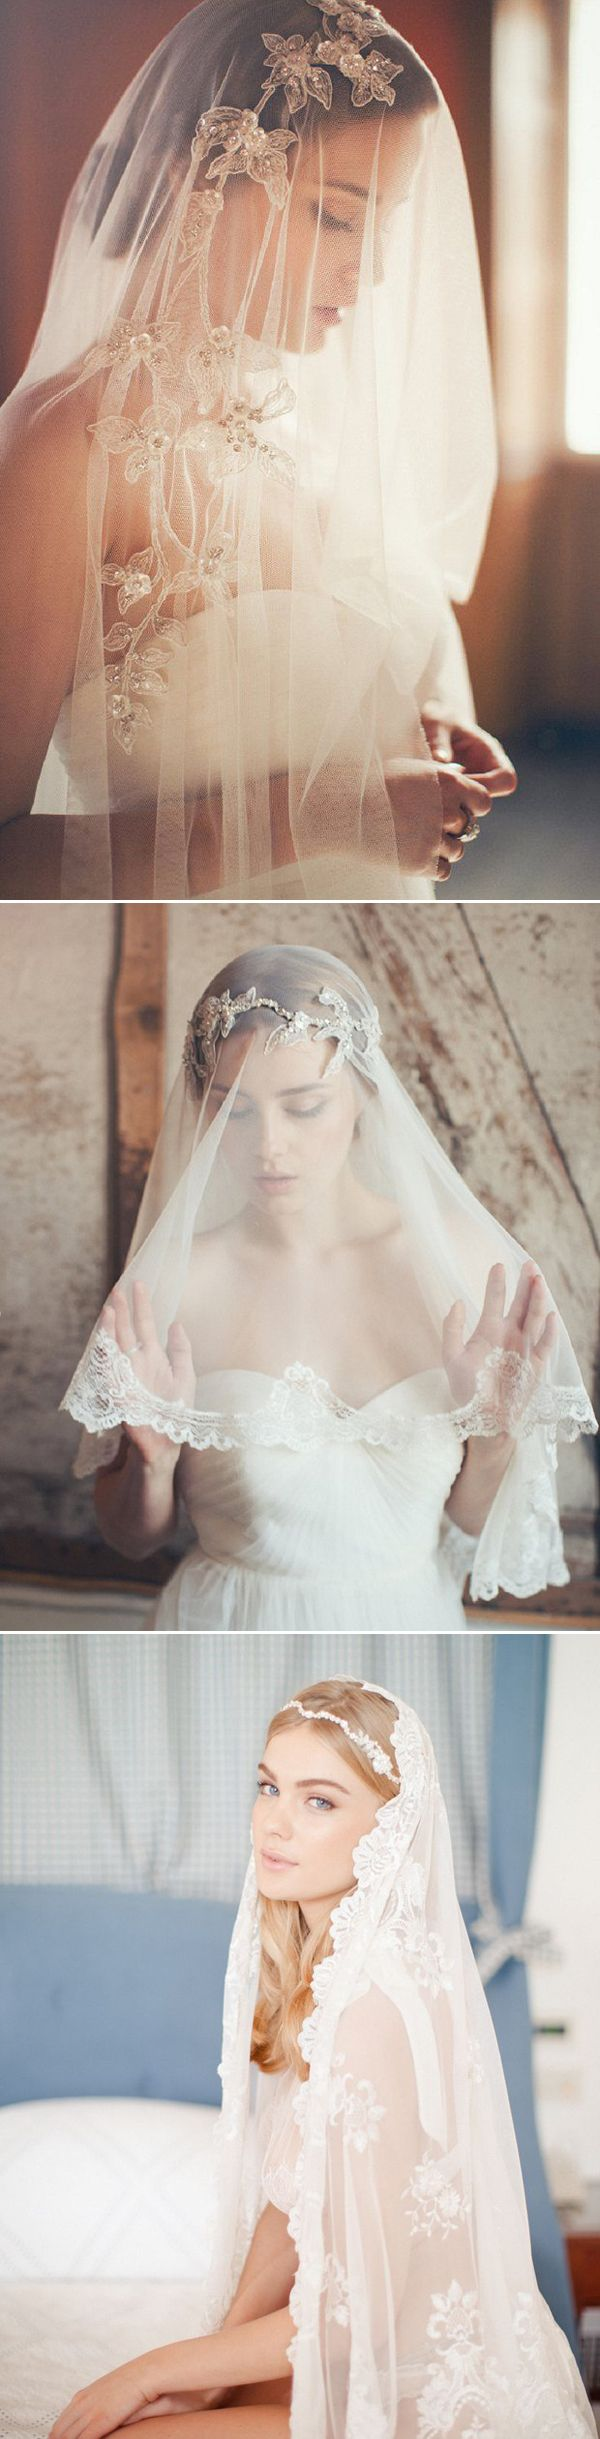 Beautiful 51 Gorgeous Veil For Your Wedding Day (With ... |Beautiful Wedding Gowns With Veils